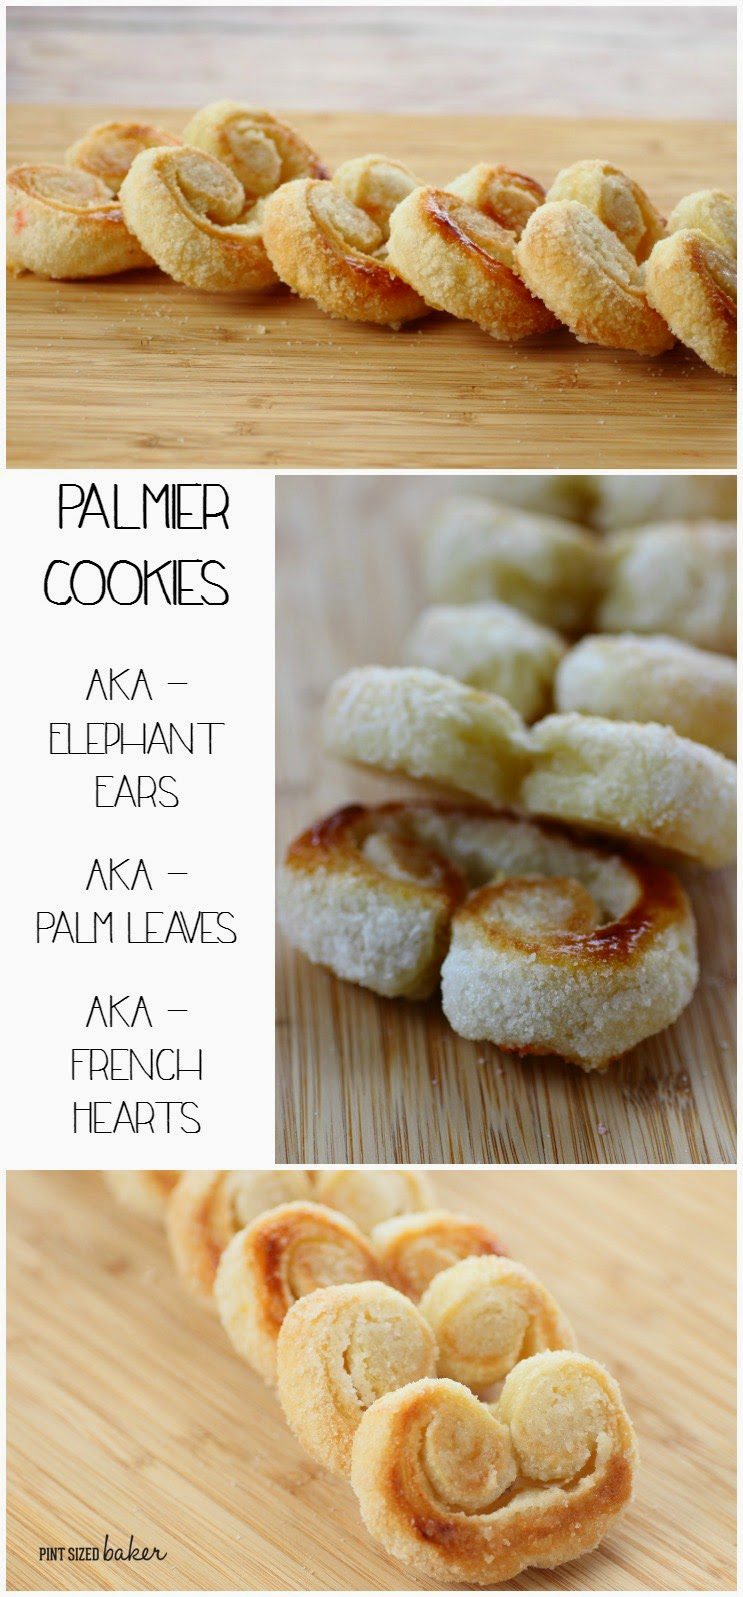 Palmier Cookies - AKA Elephant Ears - AKA Palm Leaves - AKA French Hearts. Whatever you call them, they're GREAT!